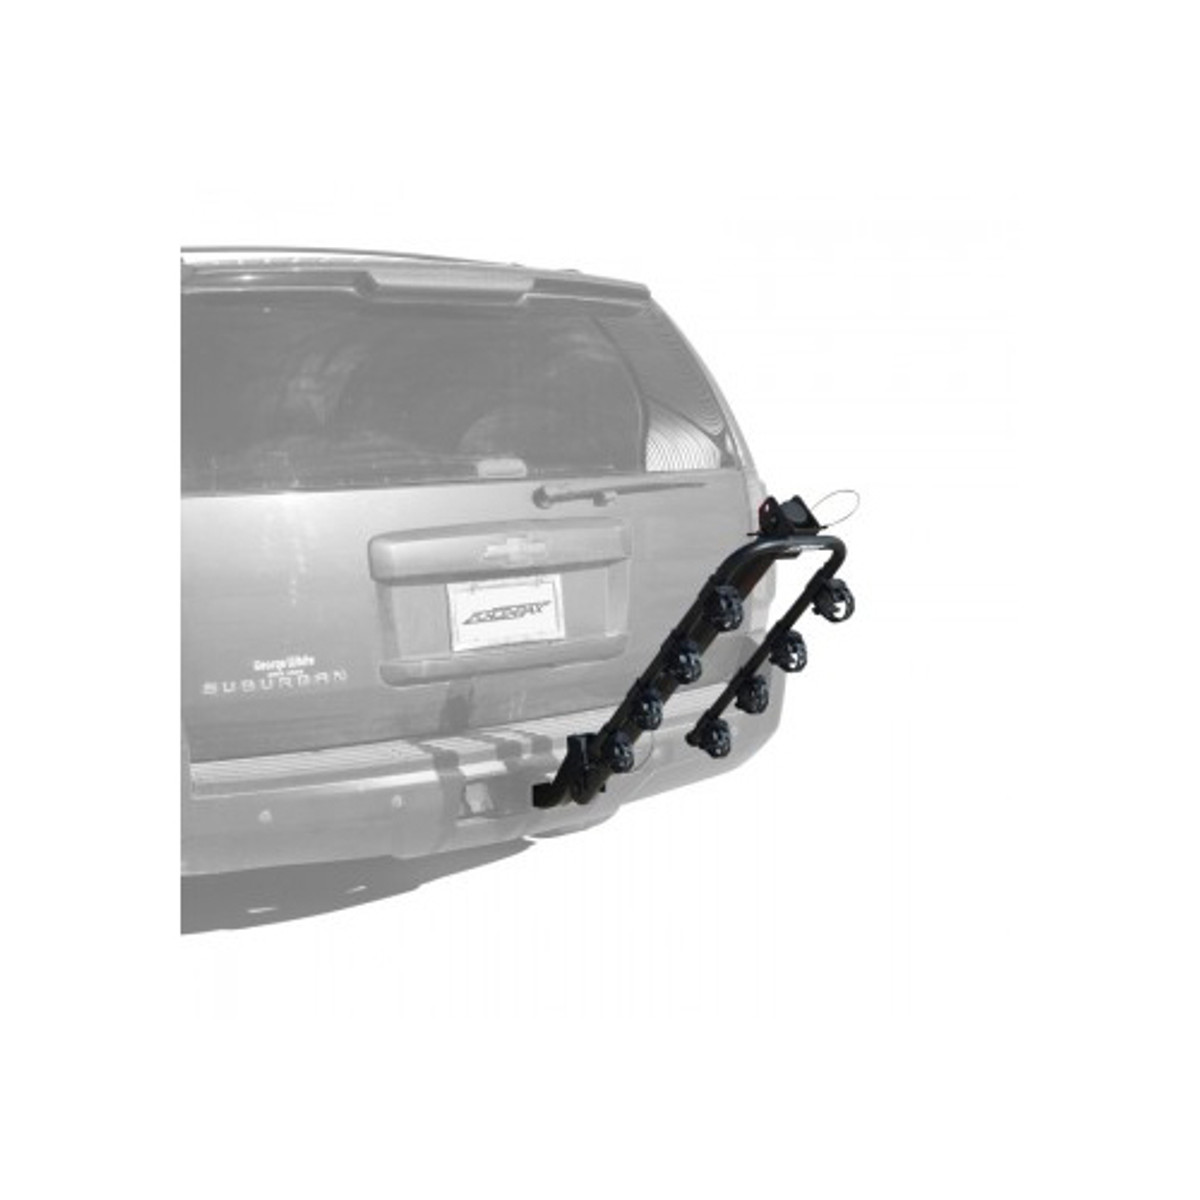 Force Rax   S.2 Deluxe 4 Bike Hitch Car Rack for 2 inch Hitch